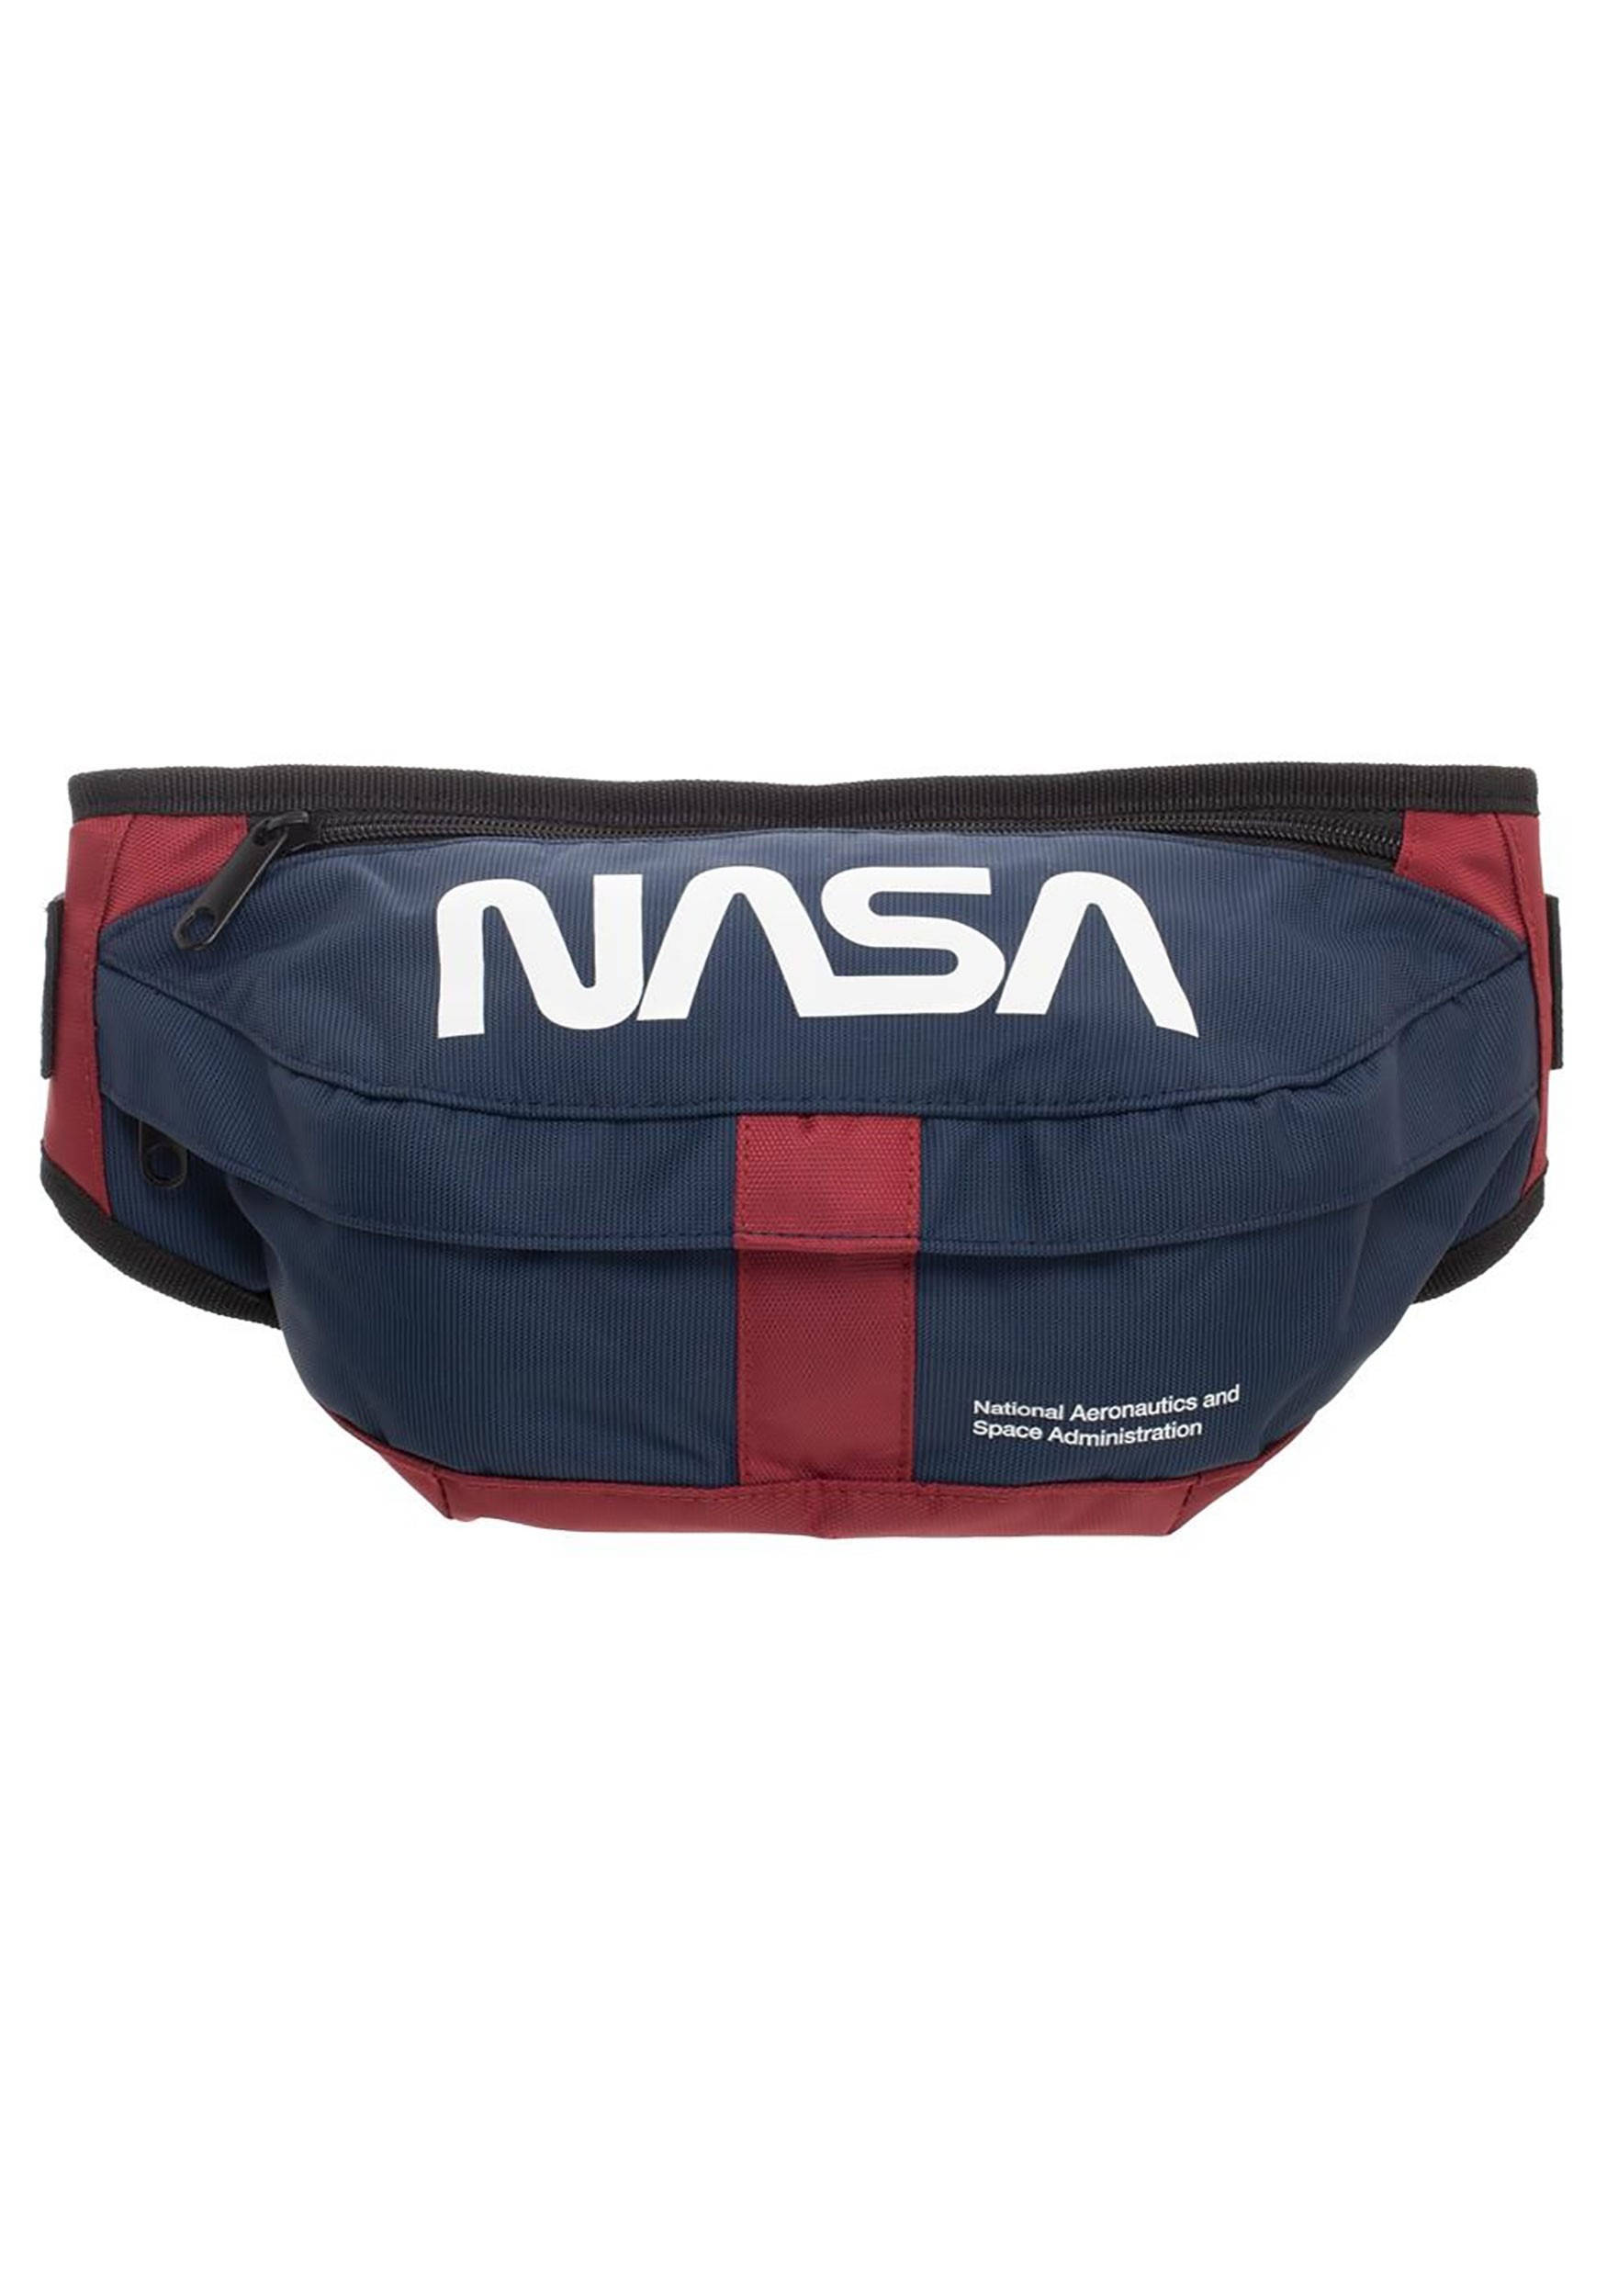 NASA Fanny Pack for Adults